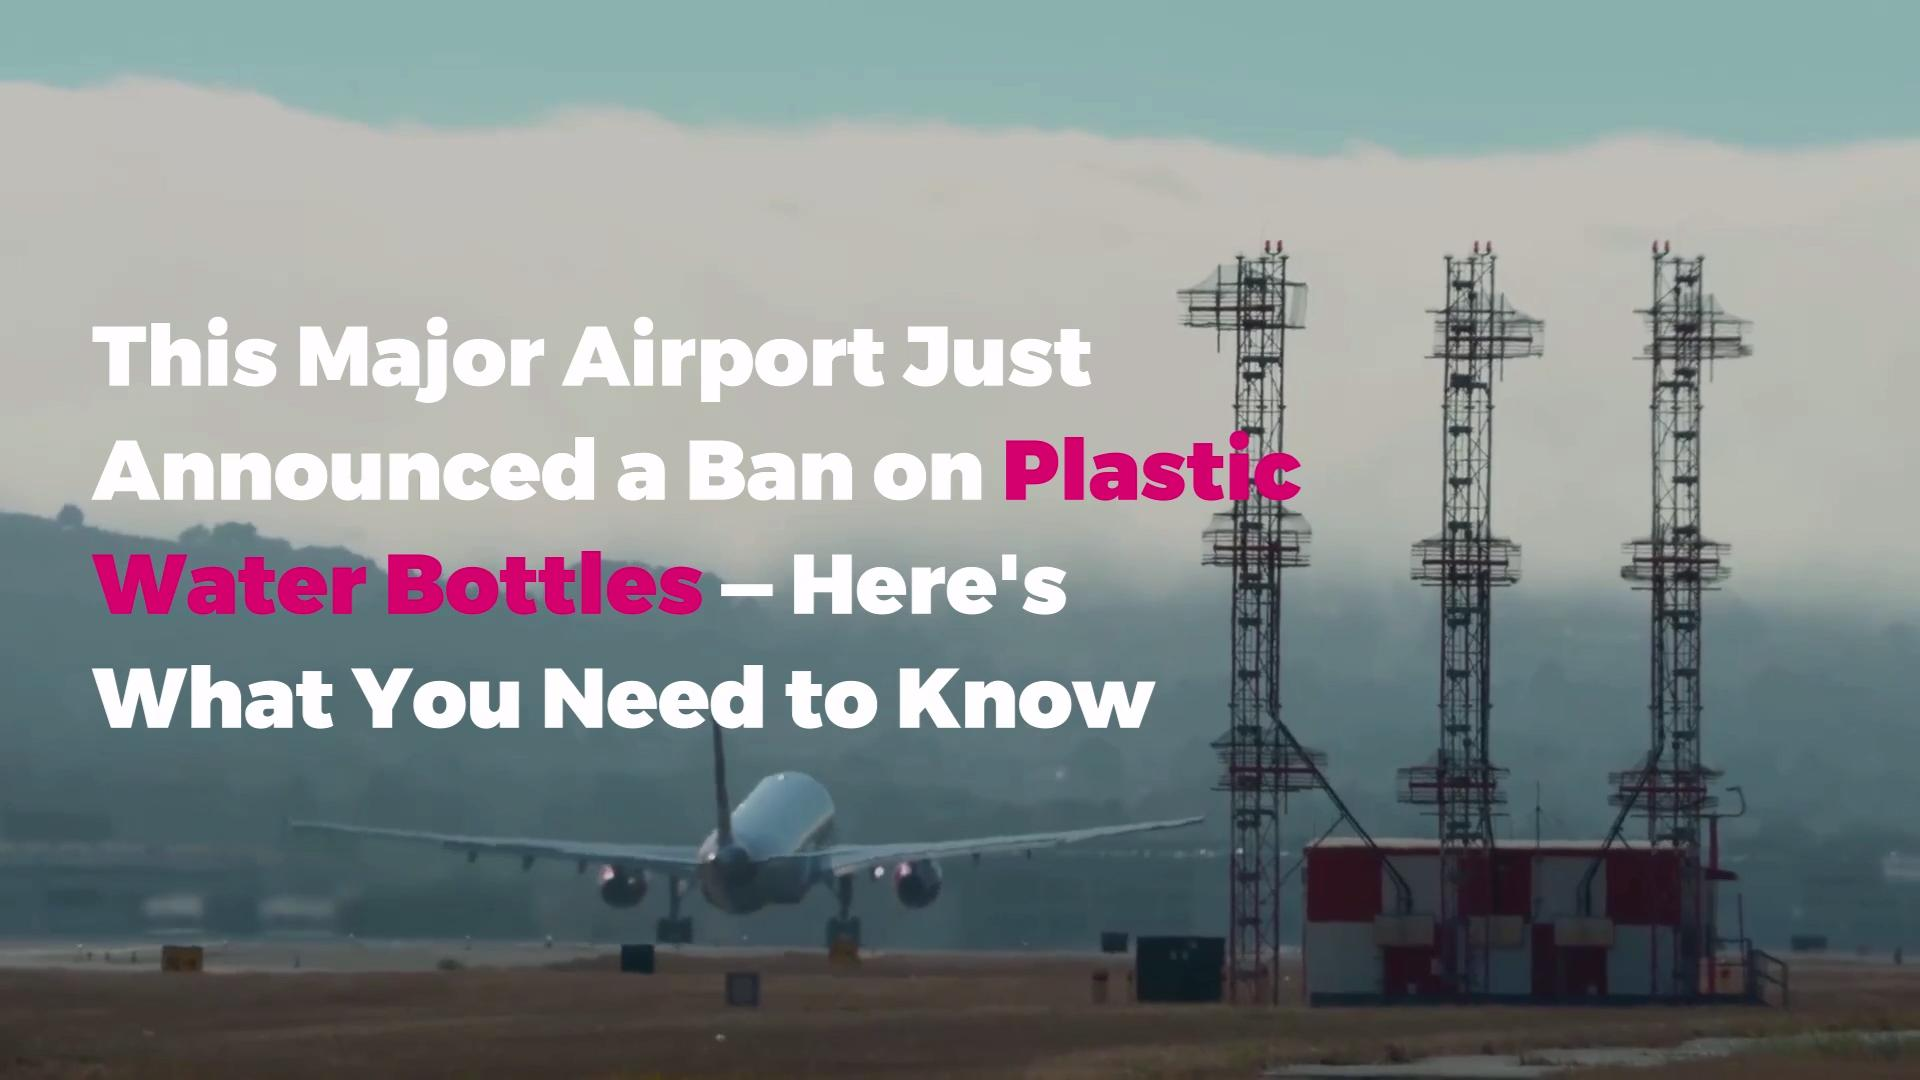 This Major Airport Just Announced a Ban on Plastic Water